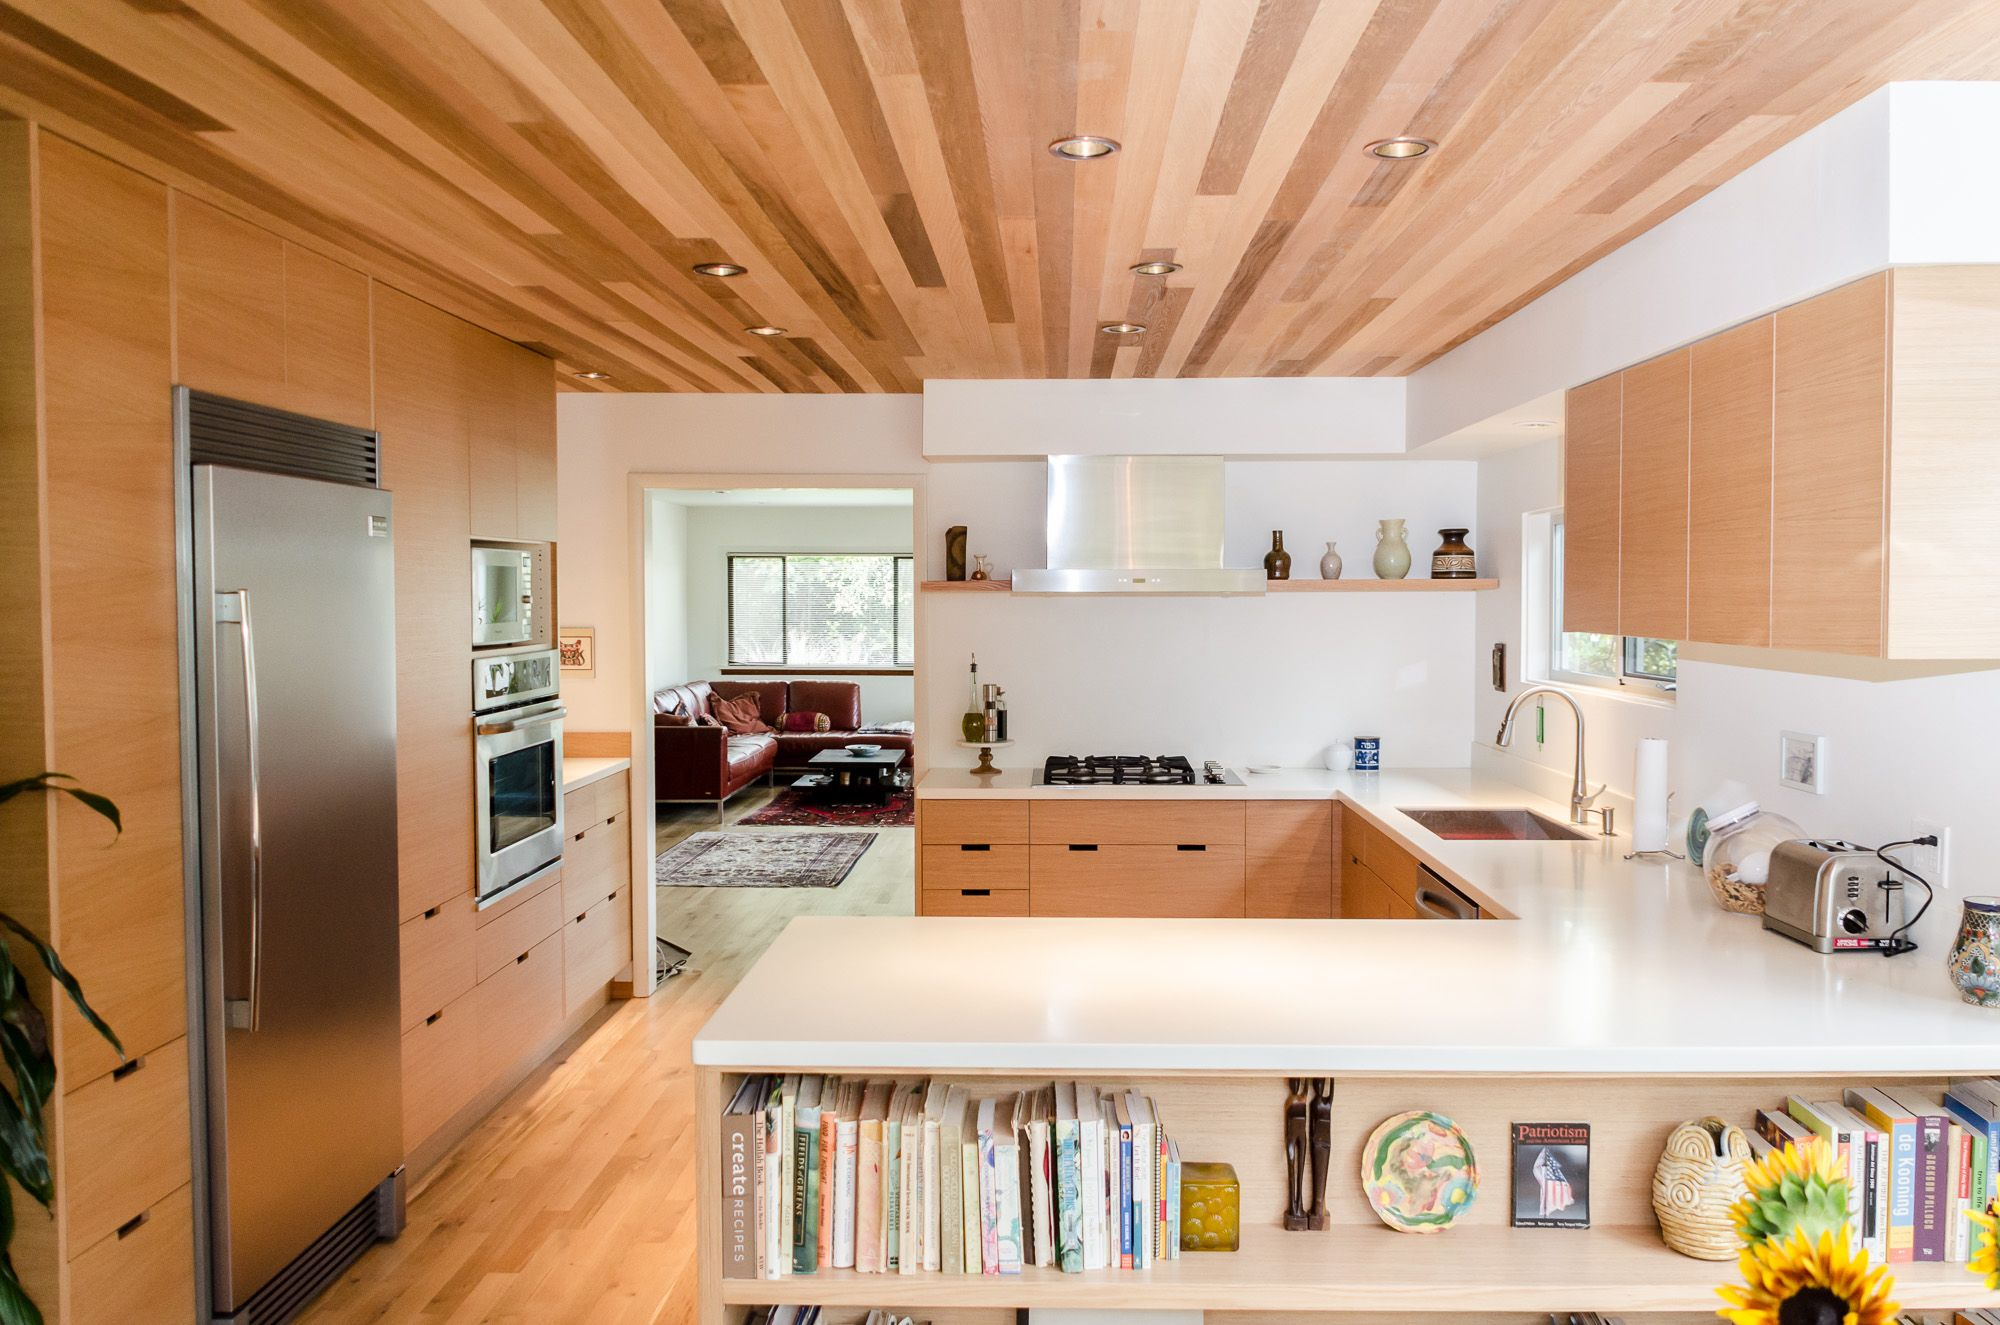 Kitchen remodel white oak custom doors for ikea cabinets unhinged